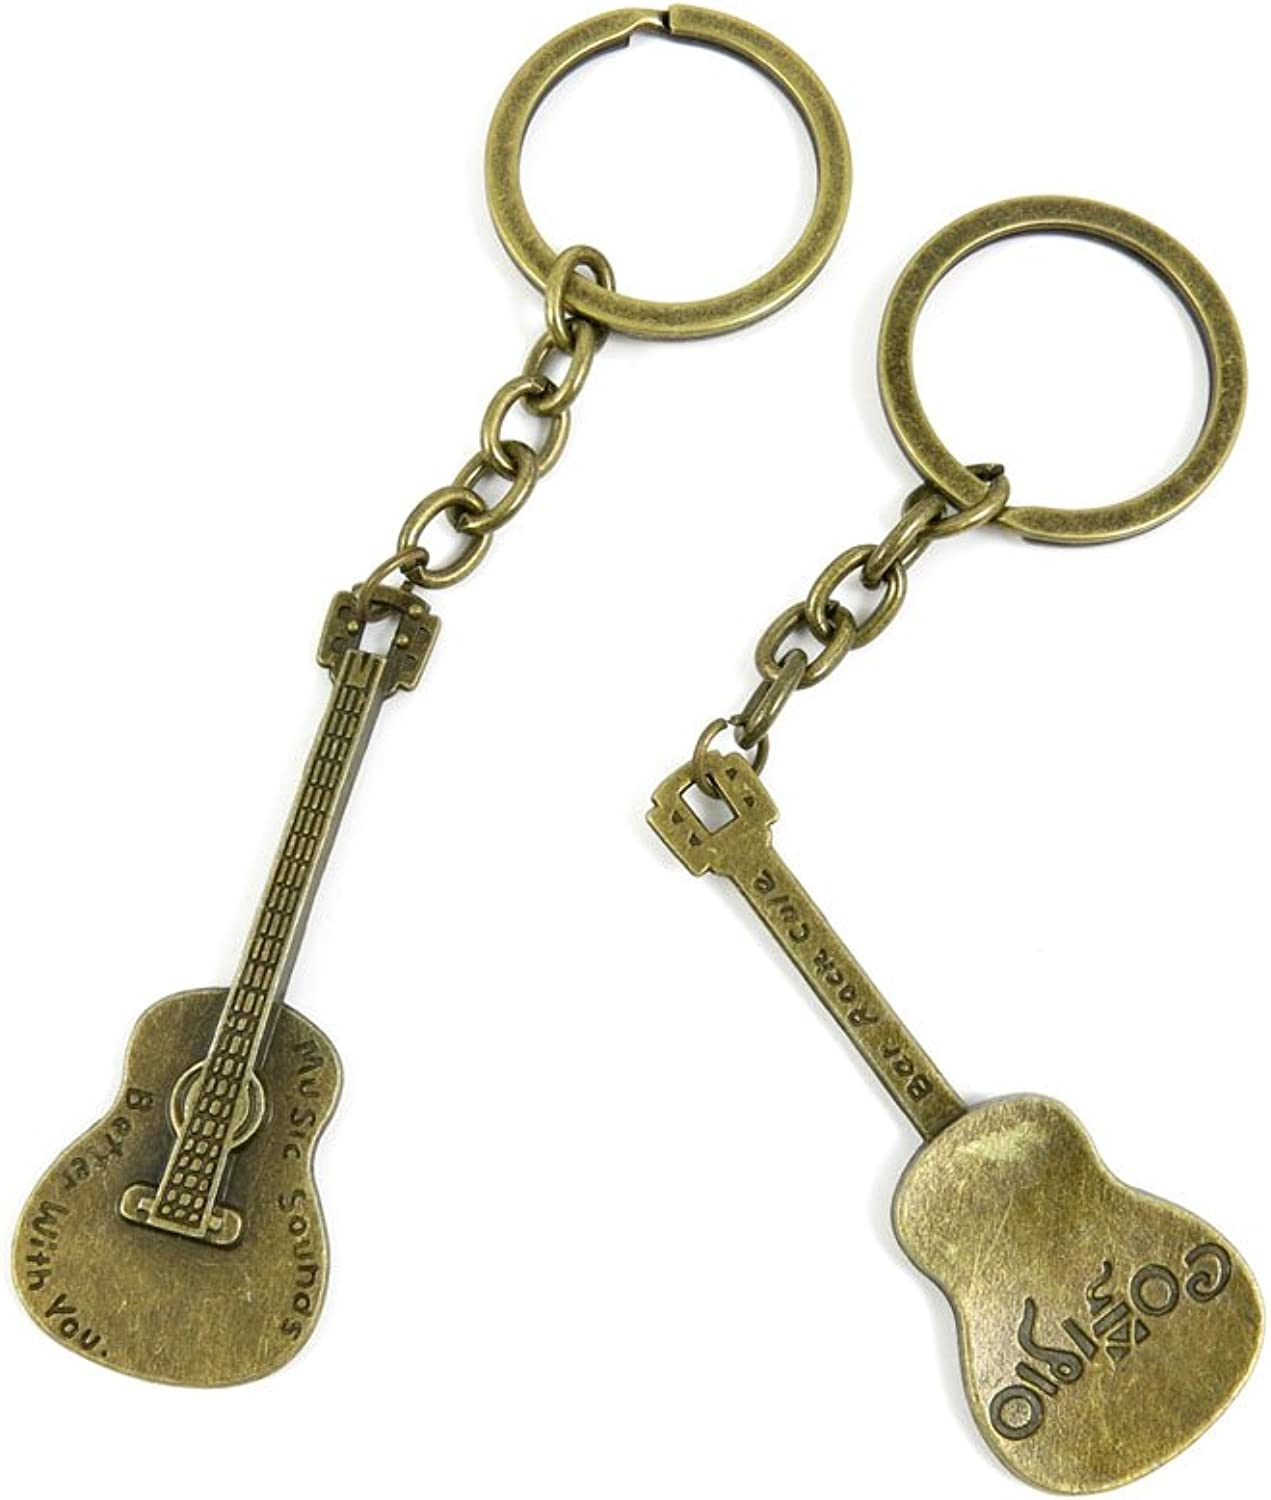 100 PCS Keyrings Keychains Key Ring Chains Tags Jewelry Findings Clasps Buckles Supplies N6FL2 Guitar